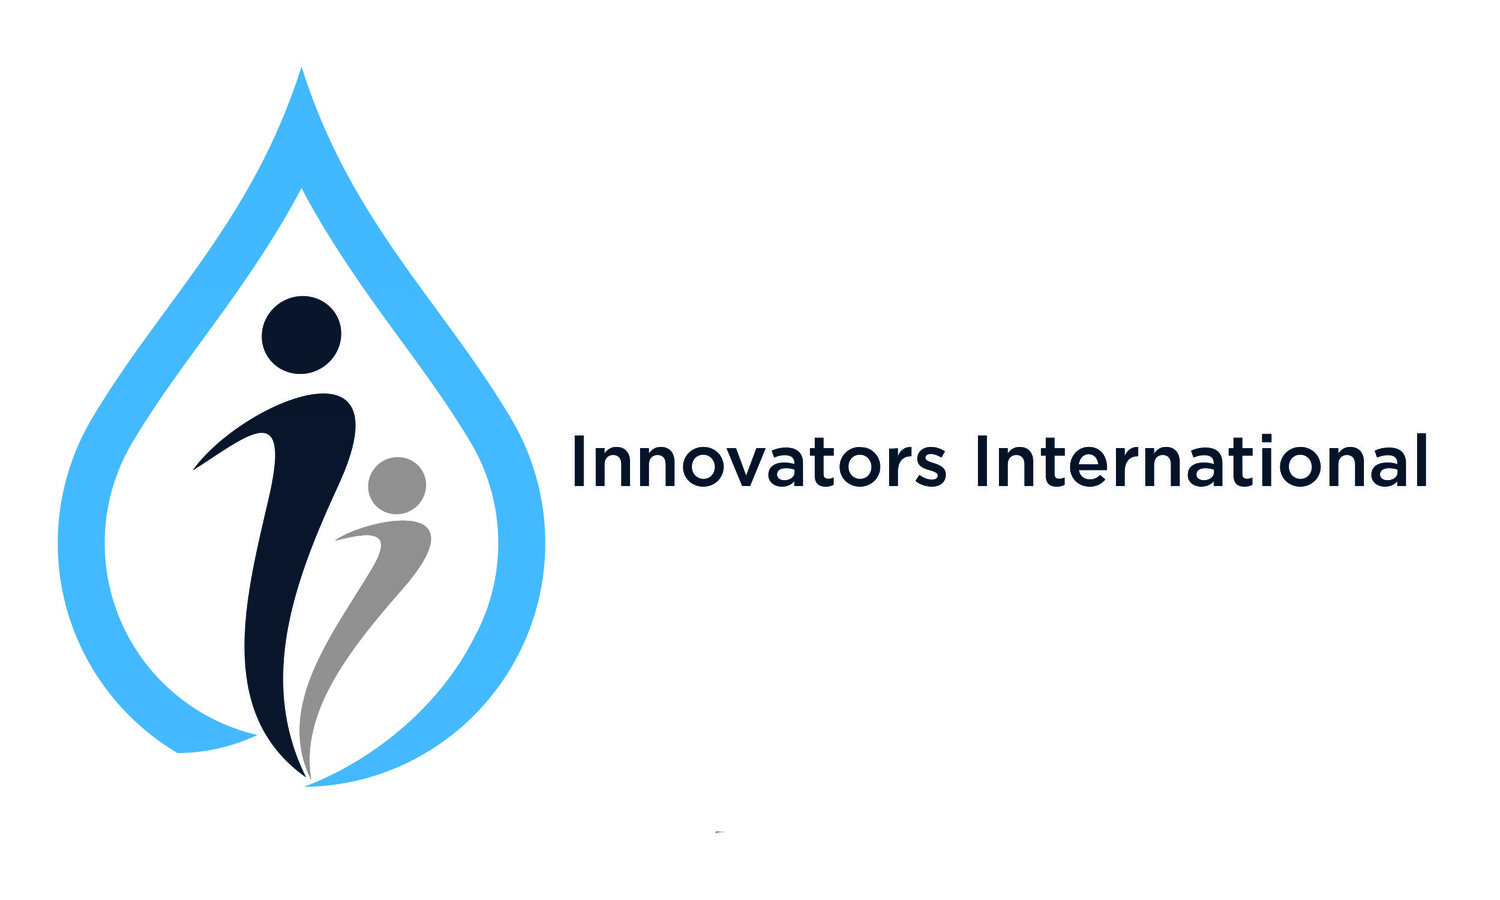 Innovators International